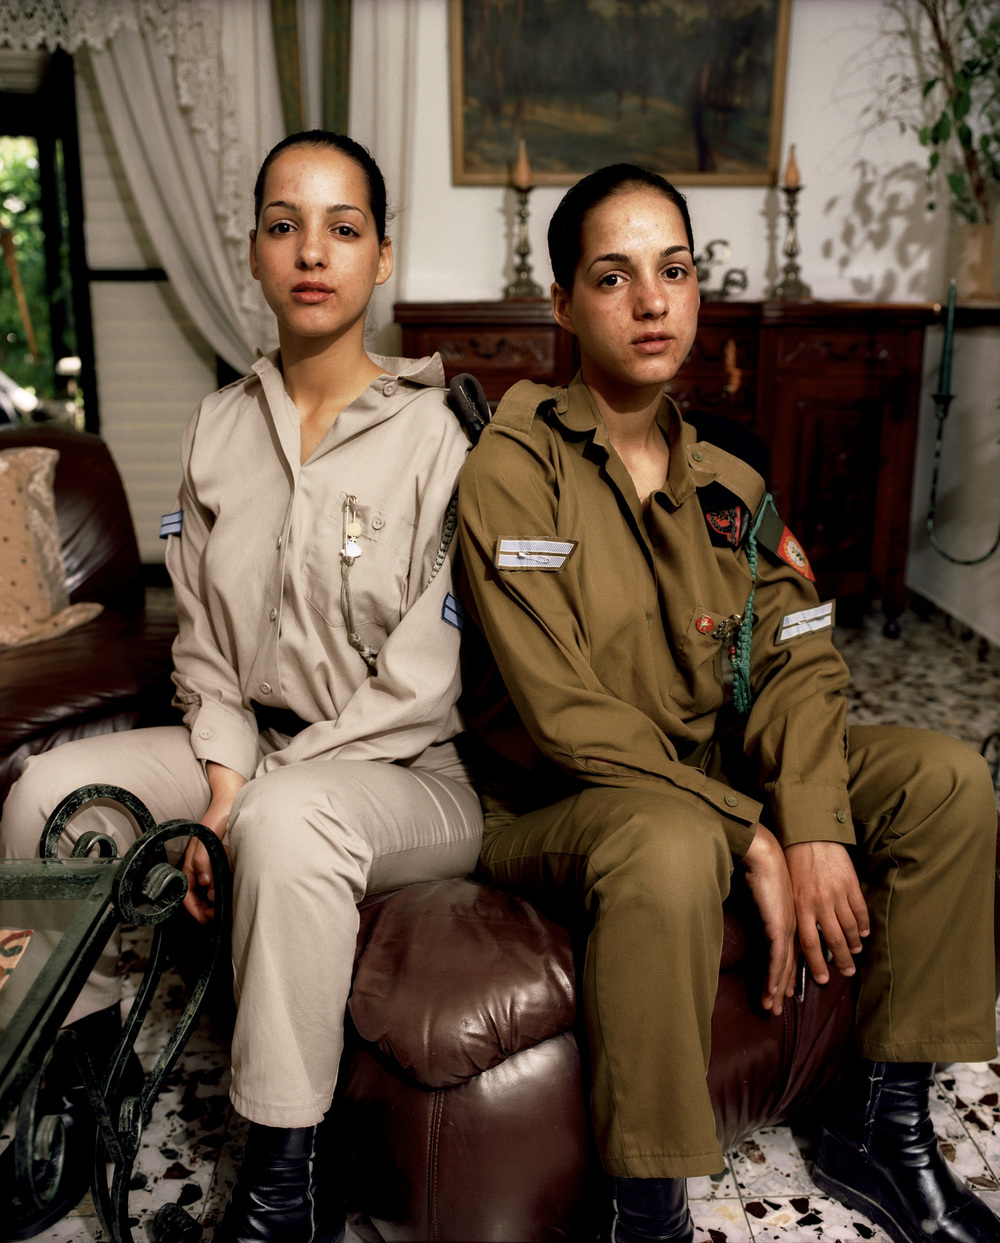 Tal and Moran  Tel Aviv, May 2002  We're Tal and Moran, twin sisters, both in the army. In this picture, we had just arrived at home for our weekend off from the army and were getting ready for Shabbat dinner, a time when our entire extended family gets together at our house. Our father built this community, so all our relatives live close by. We look forward to these Friday night gatherings with the cousins all week. We try to come home every other Friday. Going to the army at the age of eighteen puts a huge responsibility on our shoulders. It is a big honor to have the opportunity to give back to our country that we love very much, but it also gives us a whole new perspective on life. We have to become adults in a very short amount of time, but learning this kind of commitment feels good. These aren't such good days for Israel. The future is uncertain.